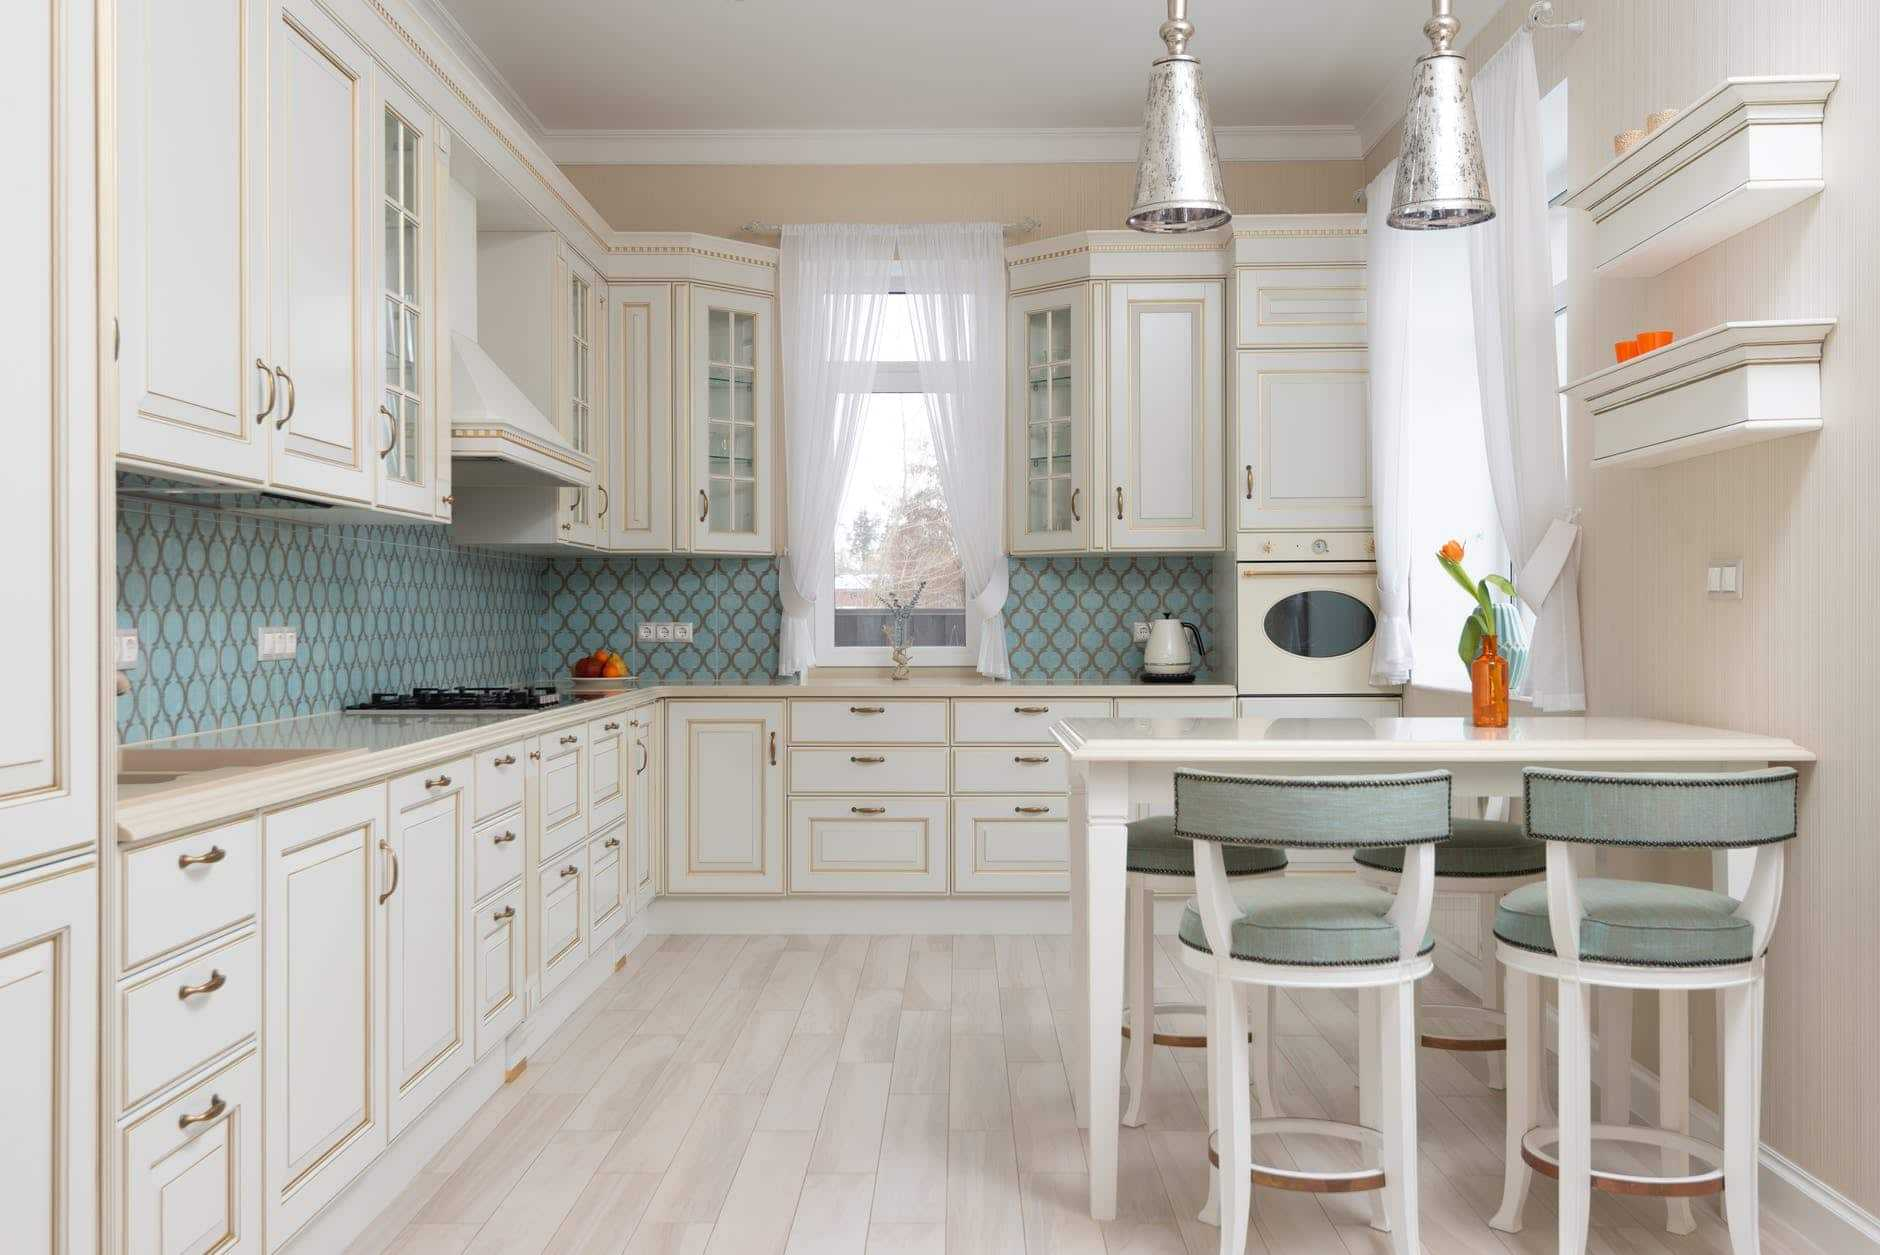 kitchen with cabinets and table with chairs